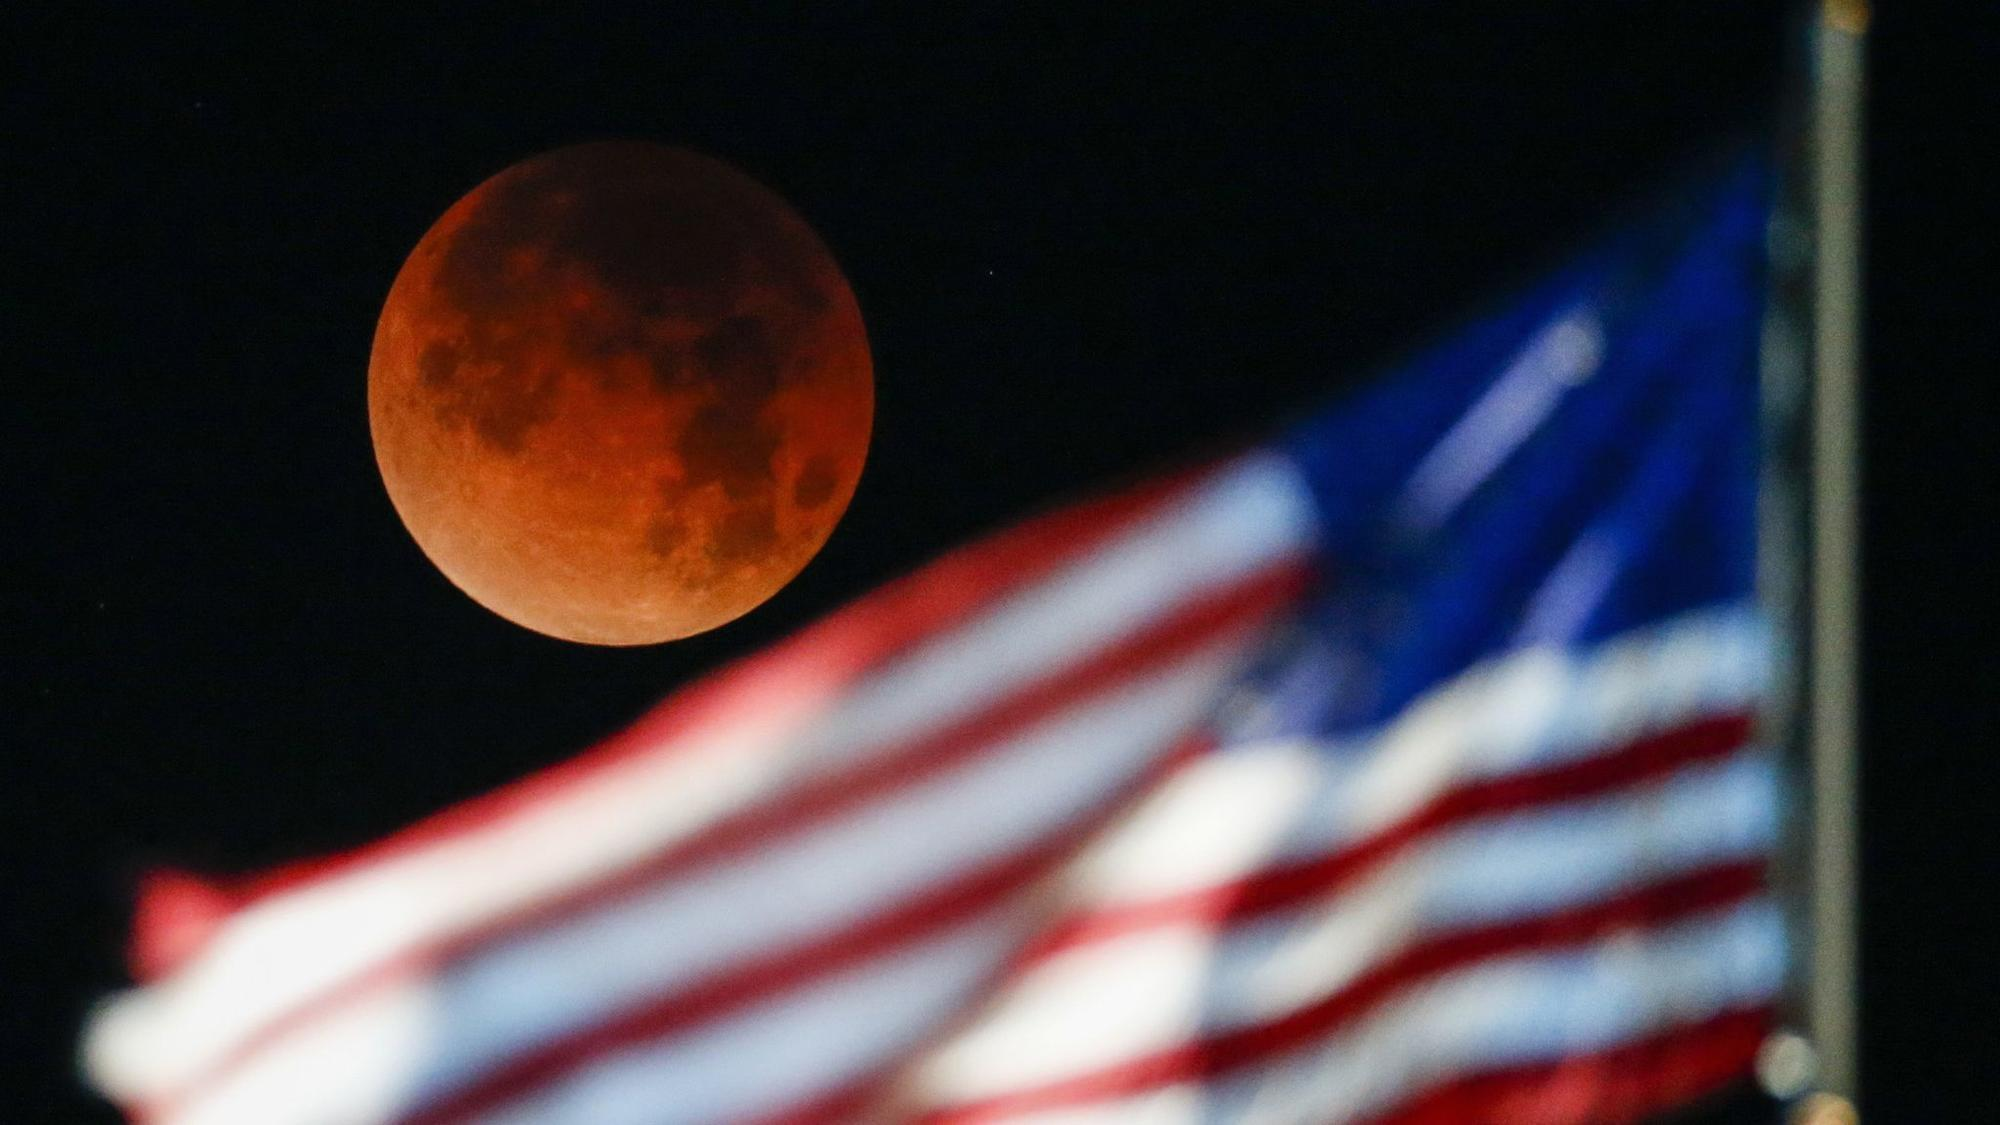 For The Super Blood Wolf Moon Lunar Eclipse Here S How To Take